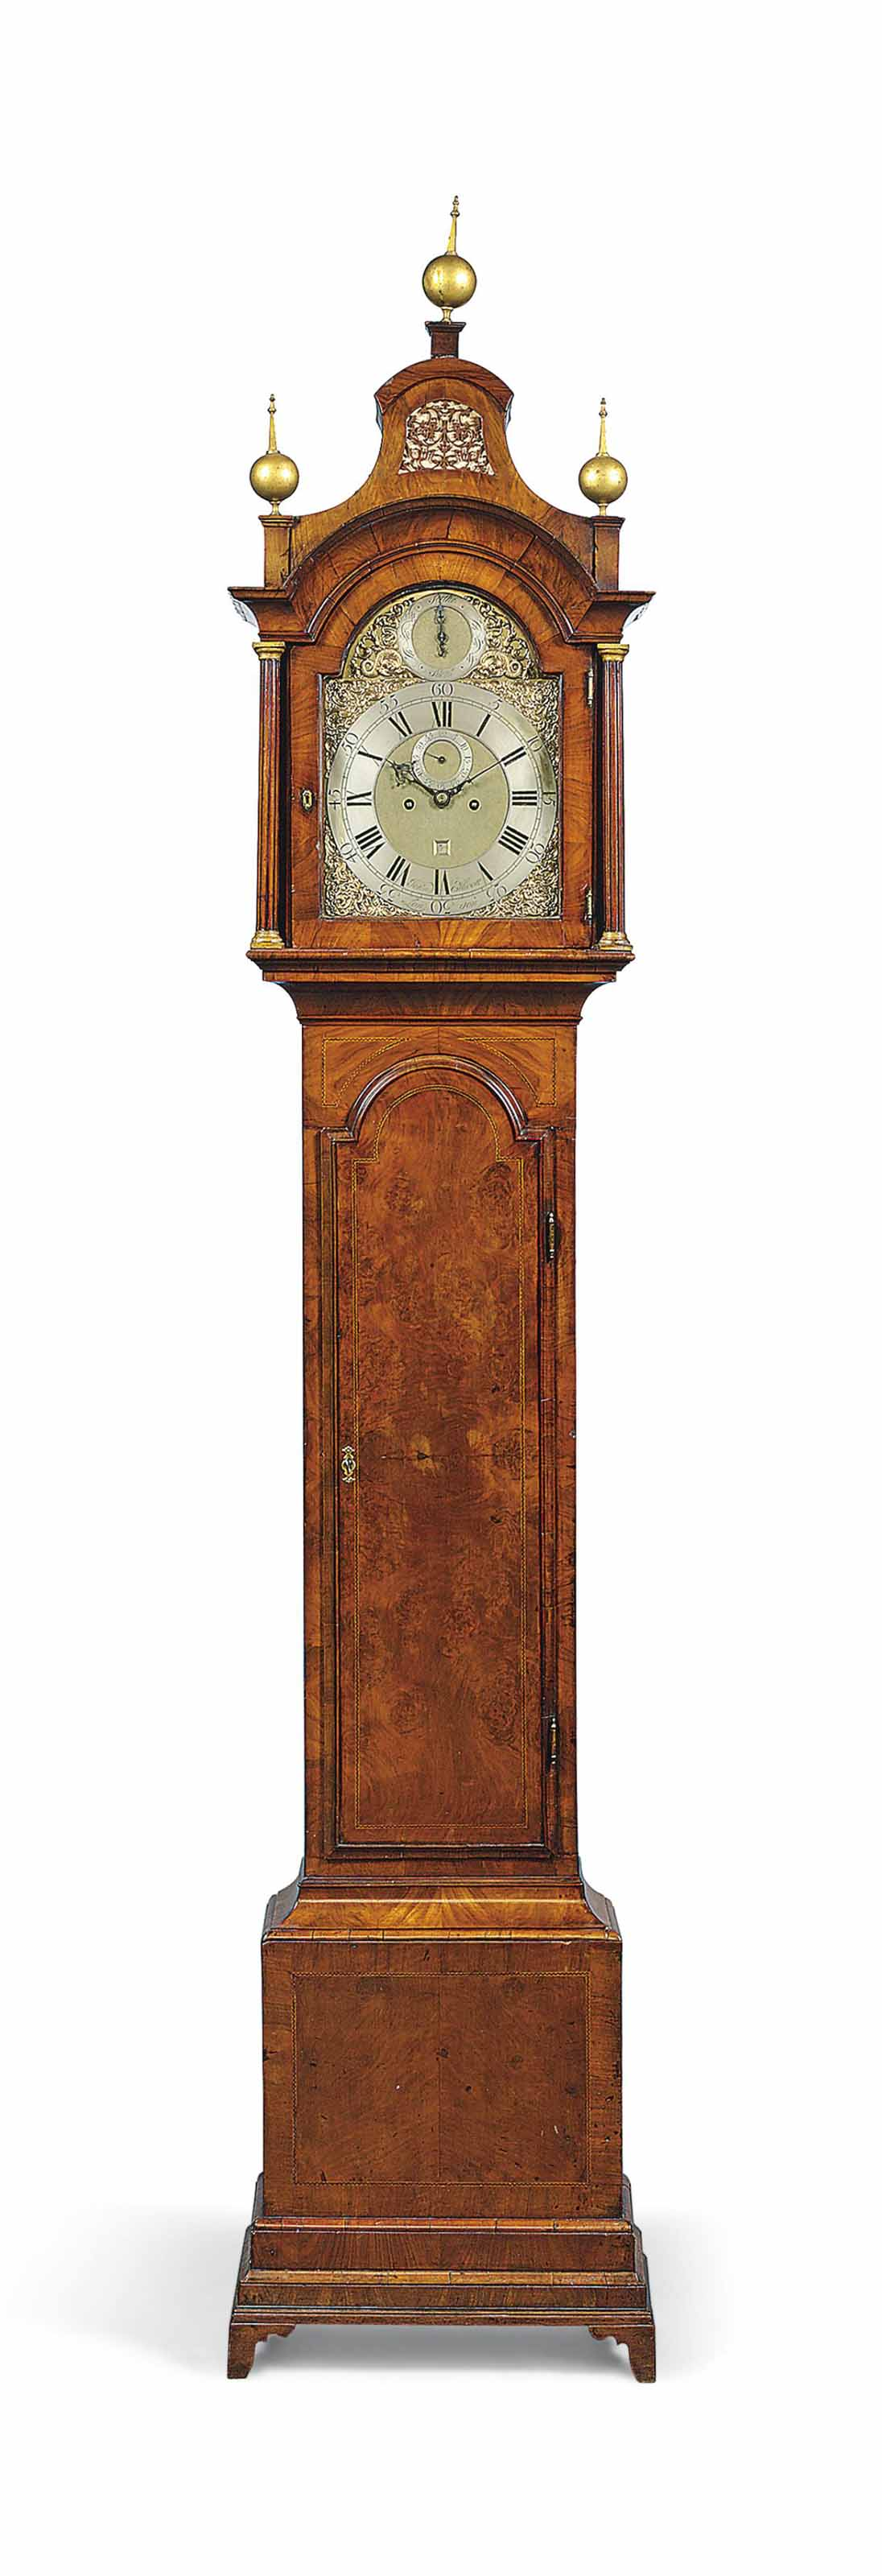 A GEORGE III MAHOGANY EIGHT-DAY STRIKING LONGCASE CLOCK